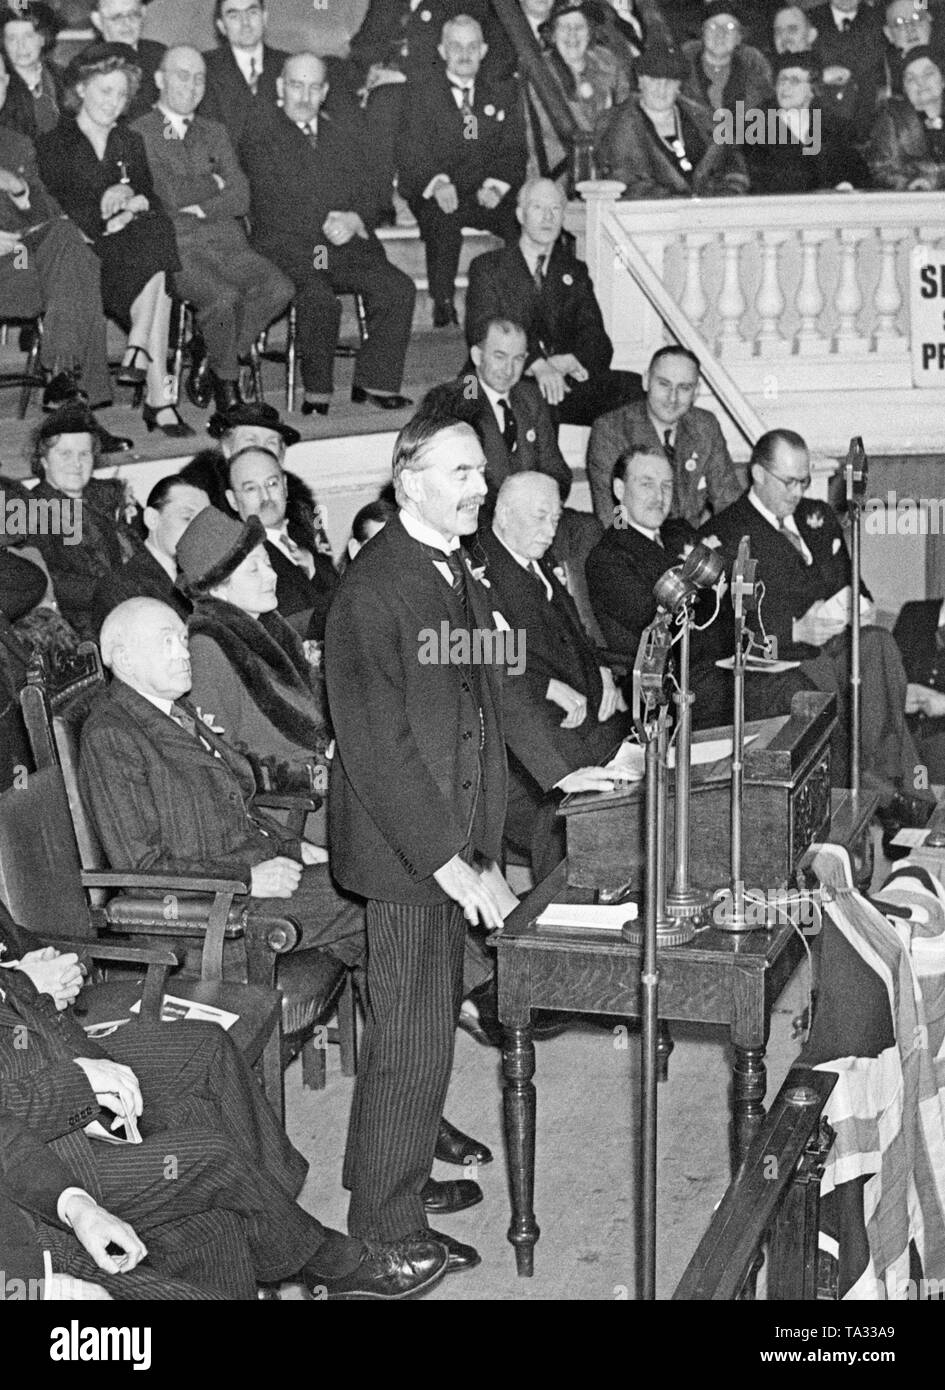 British Prime Minister Neville Chamberlain gives a speech at the